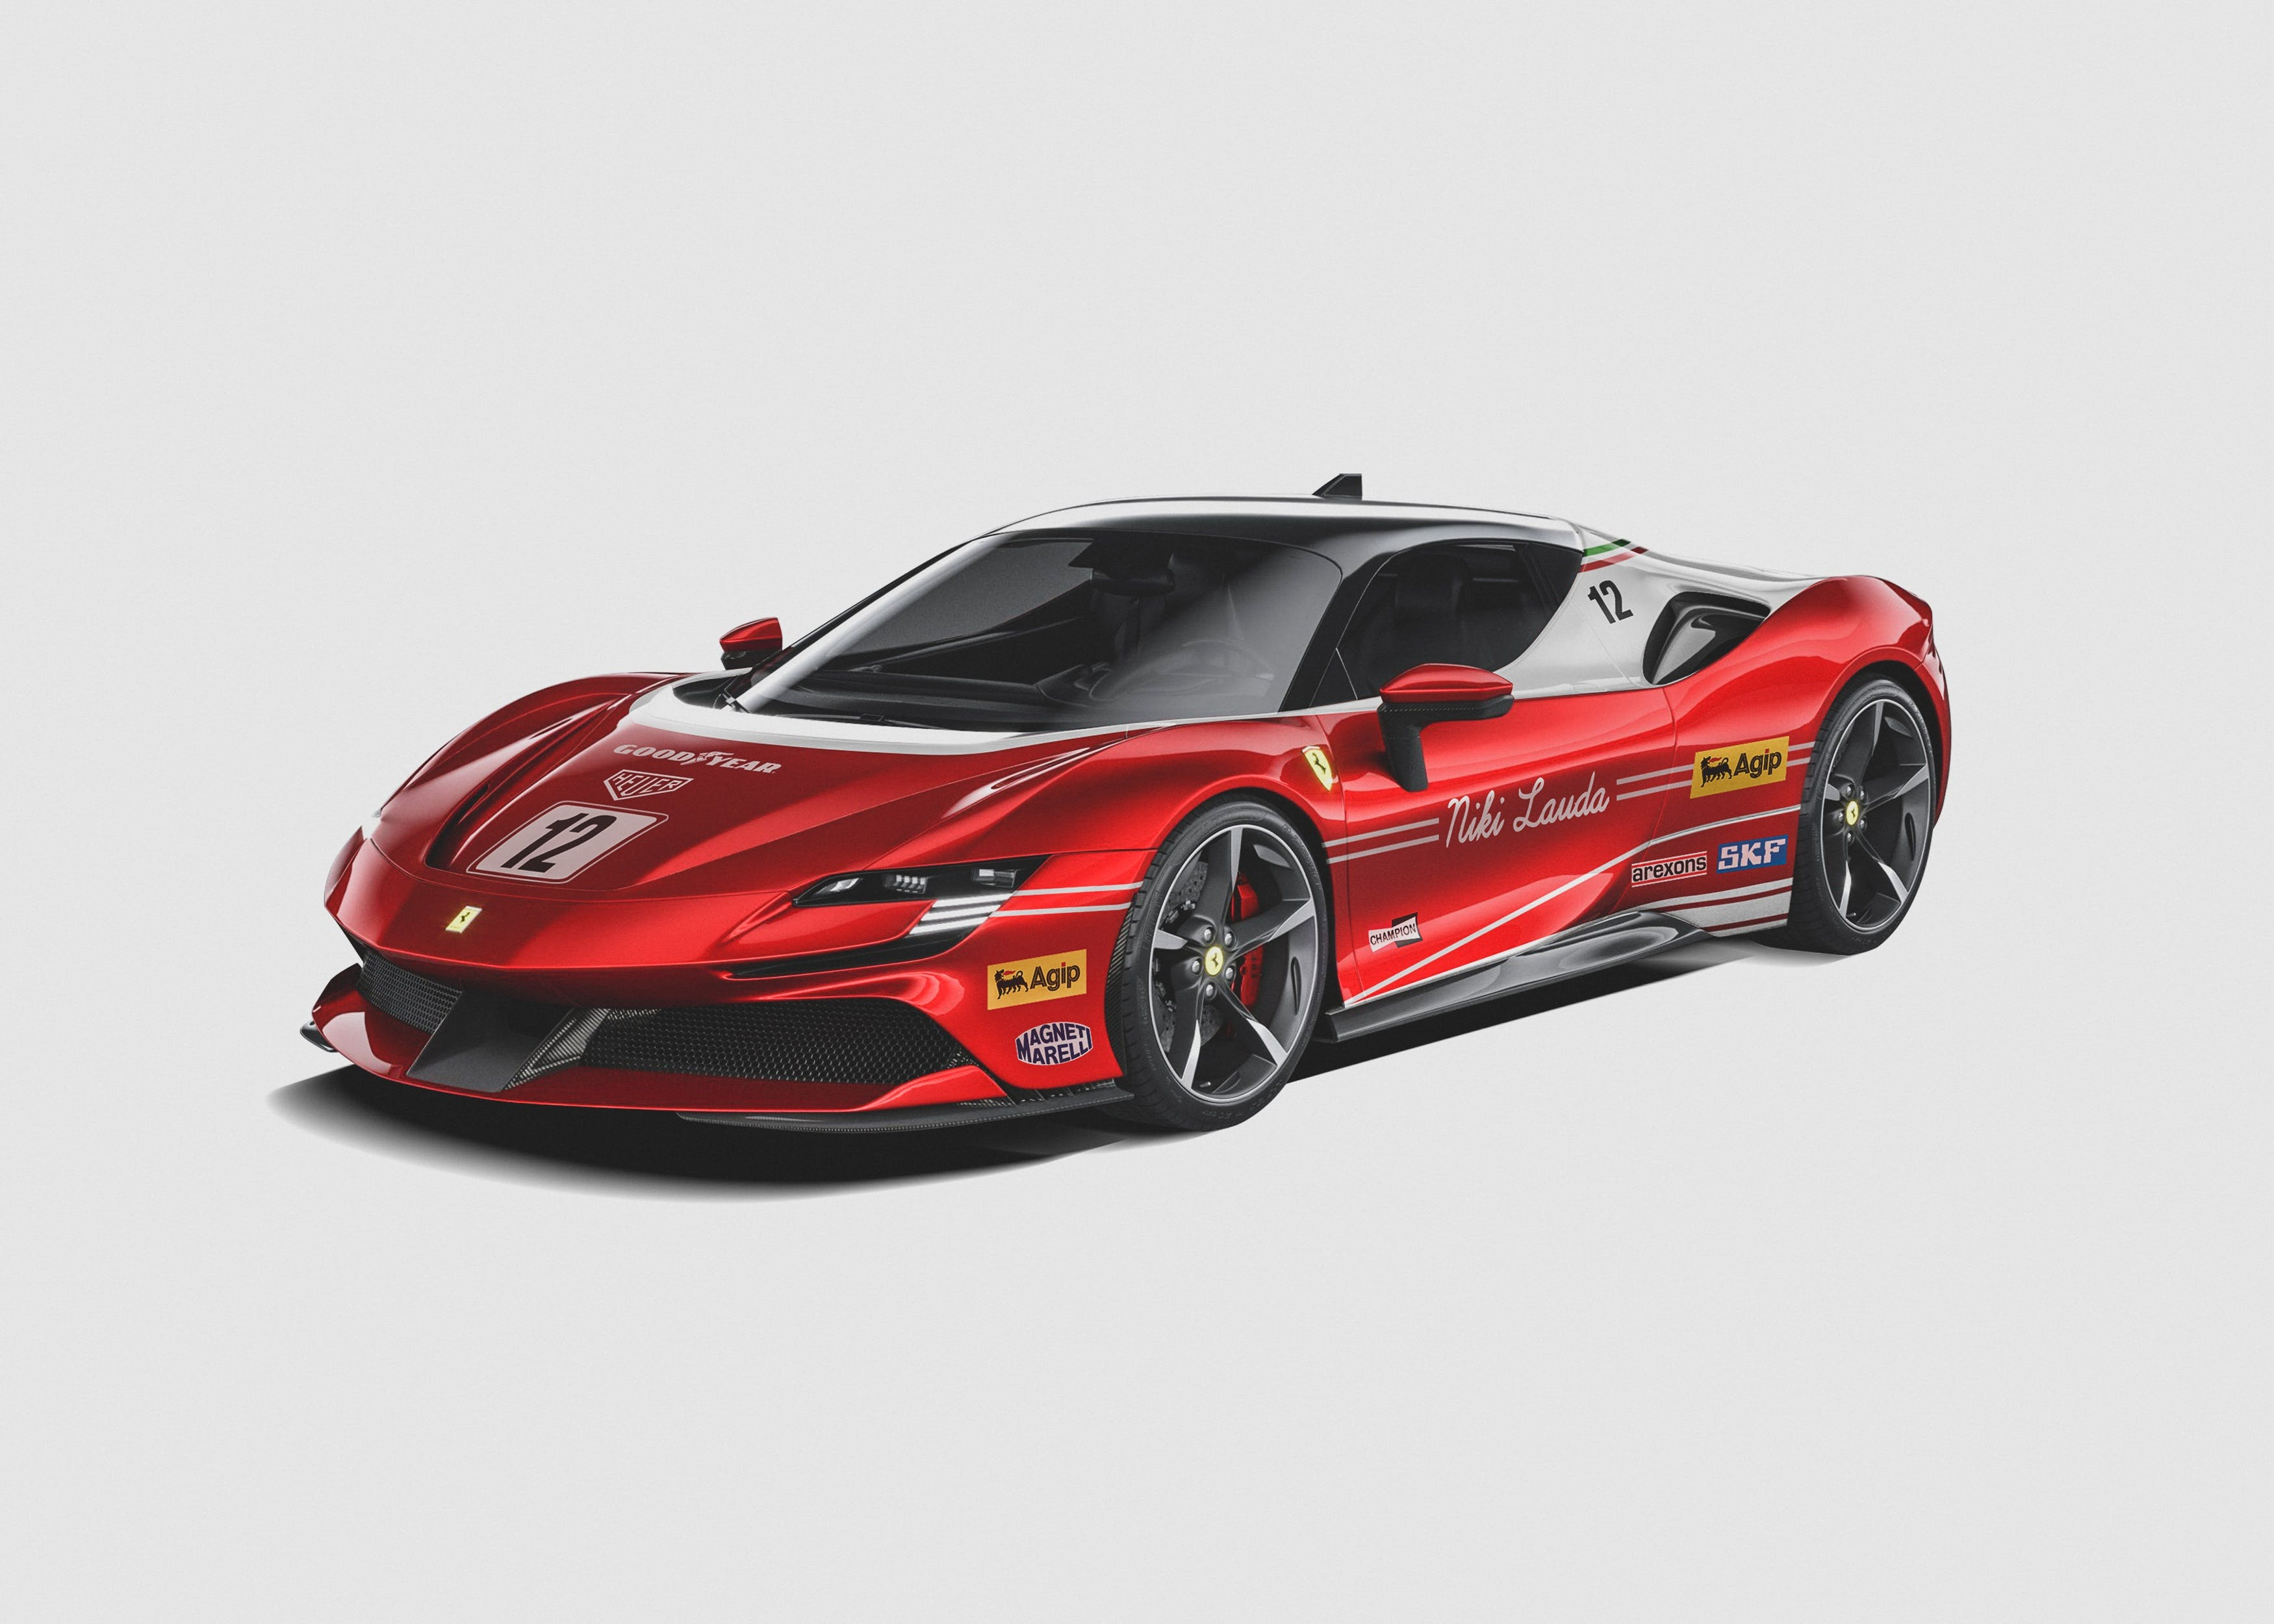 Supercars-with-f1-livery-1